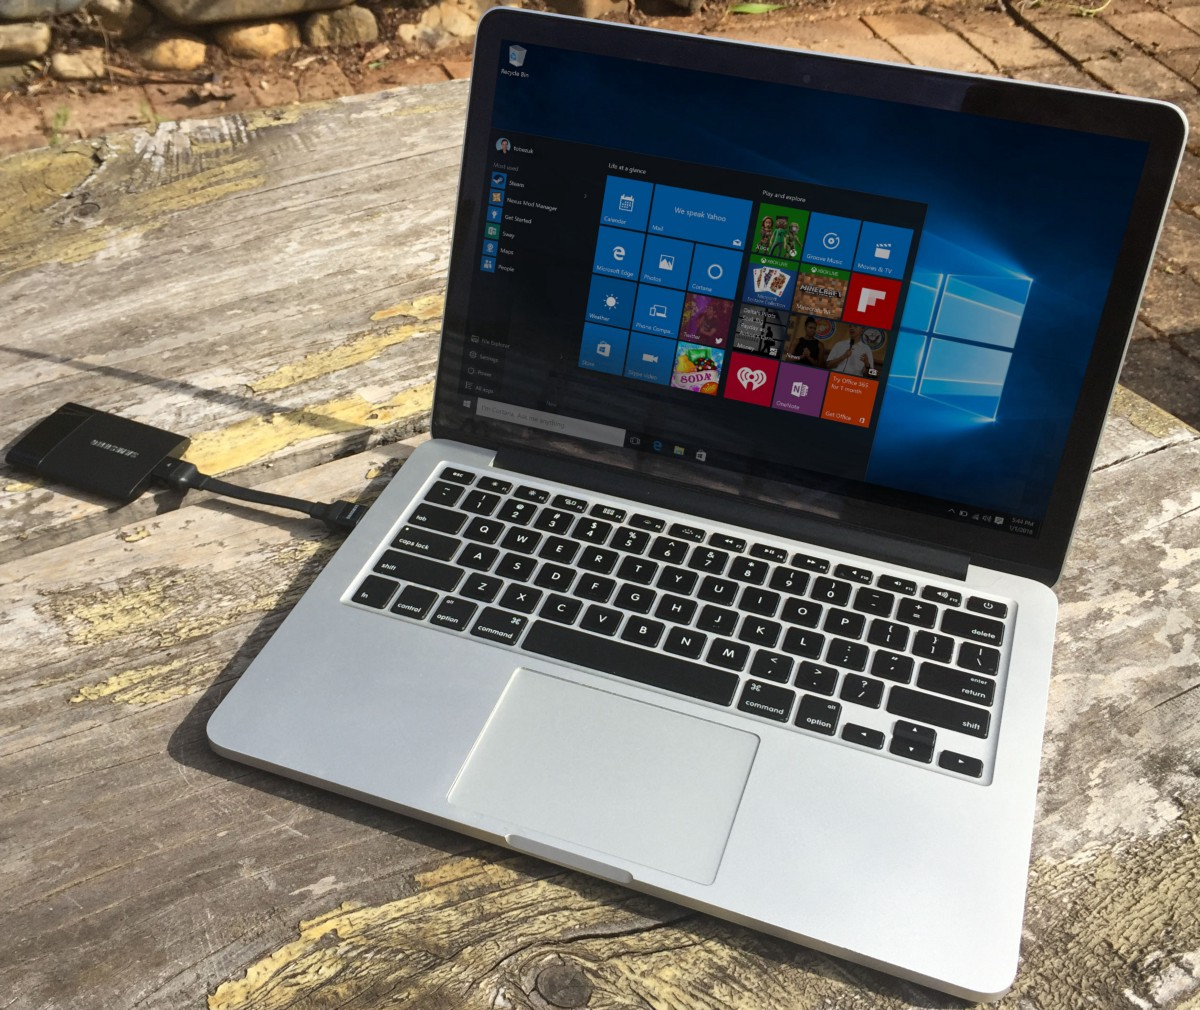 How to run Bootcamp and Windows 10 on a USB SSD - By